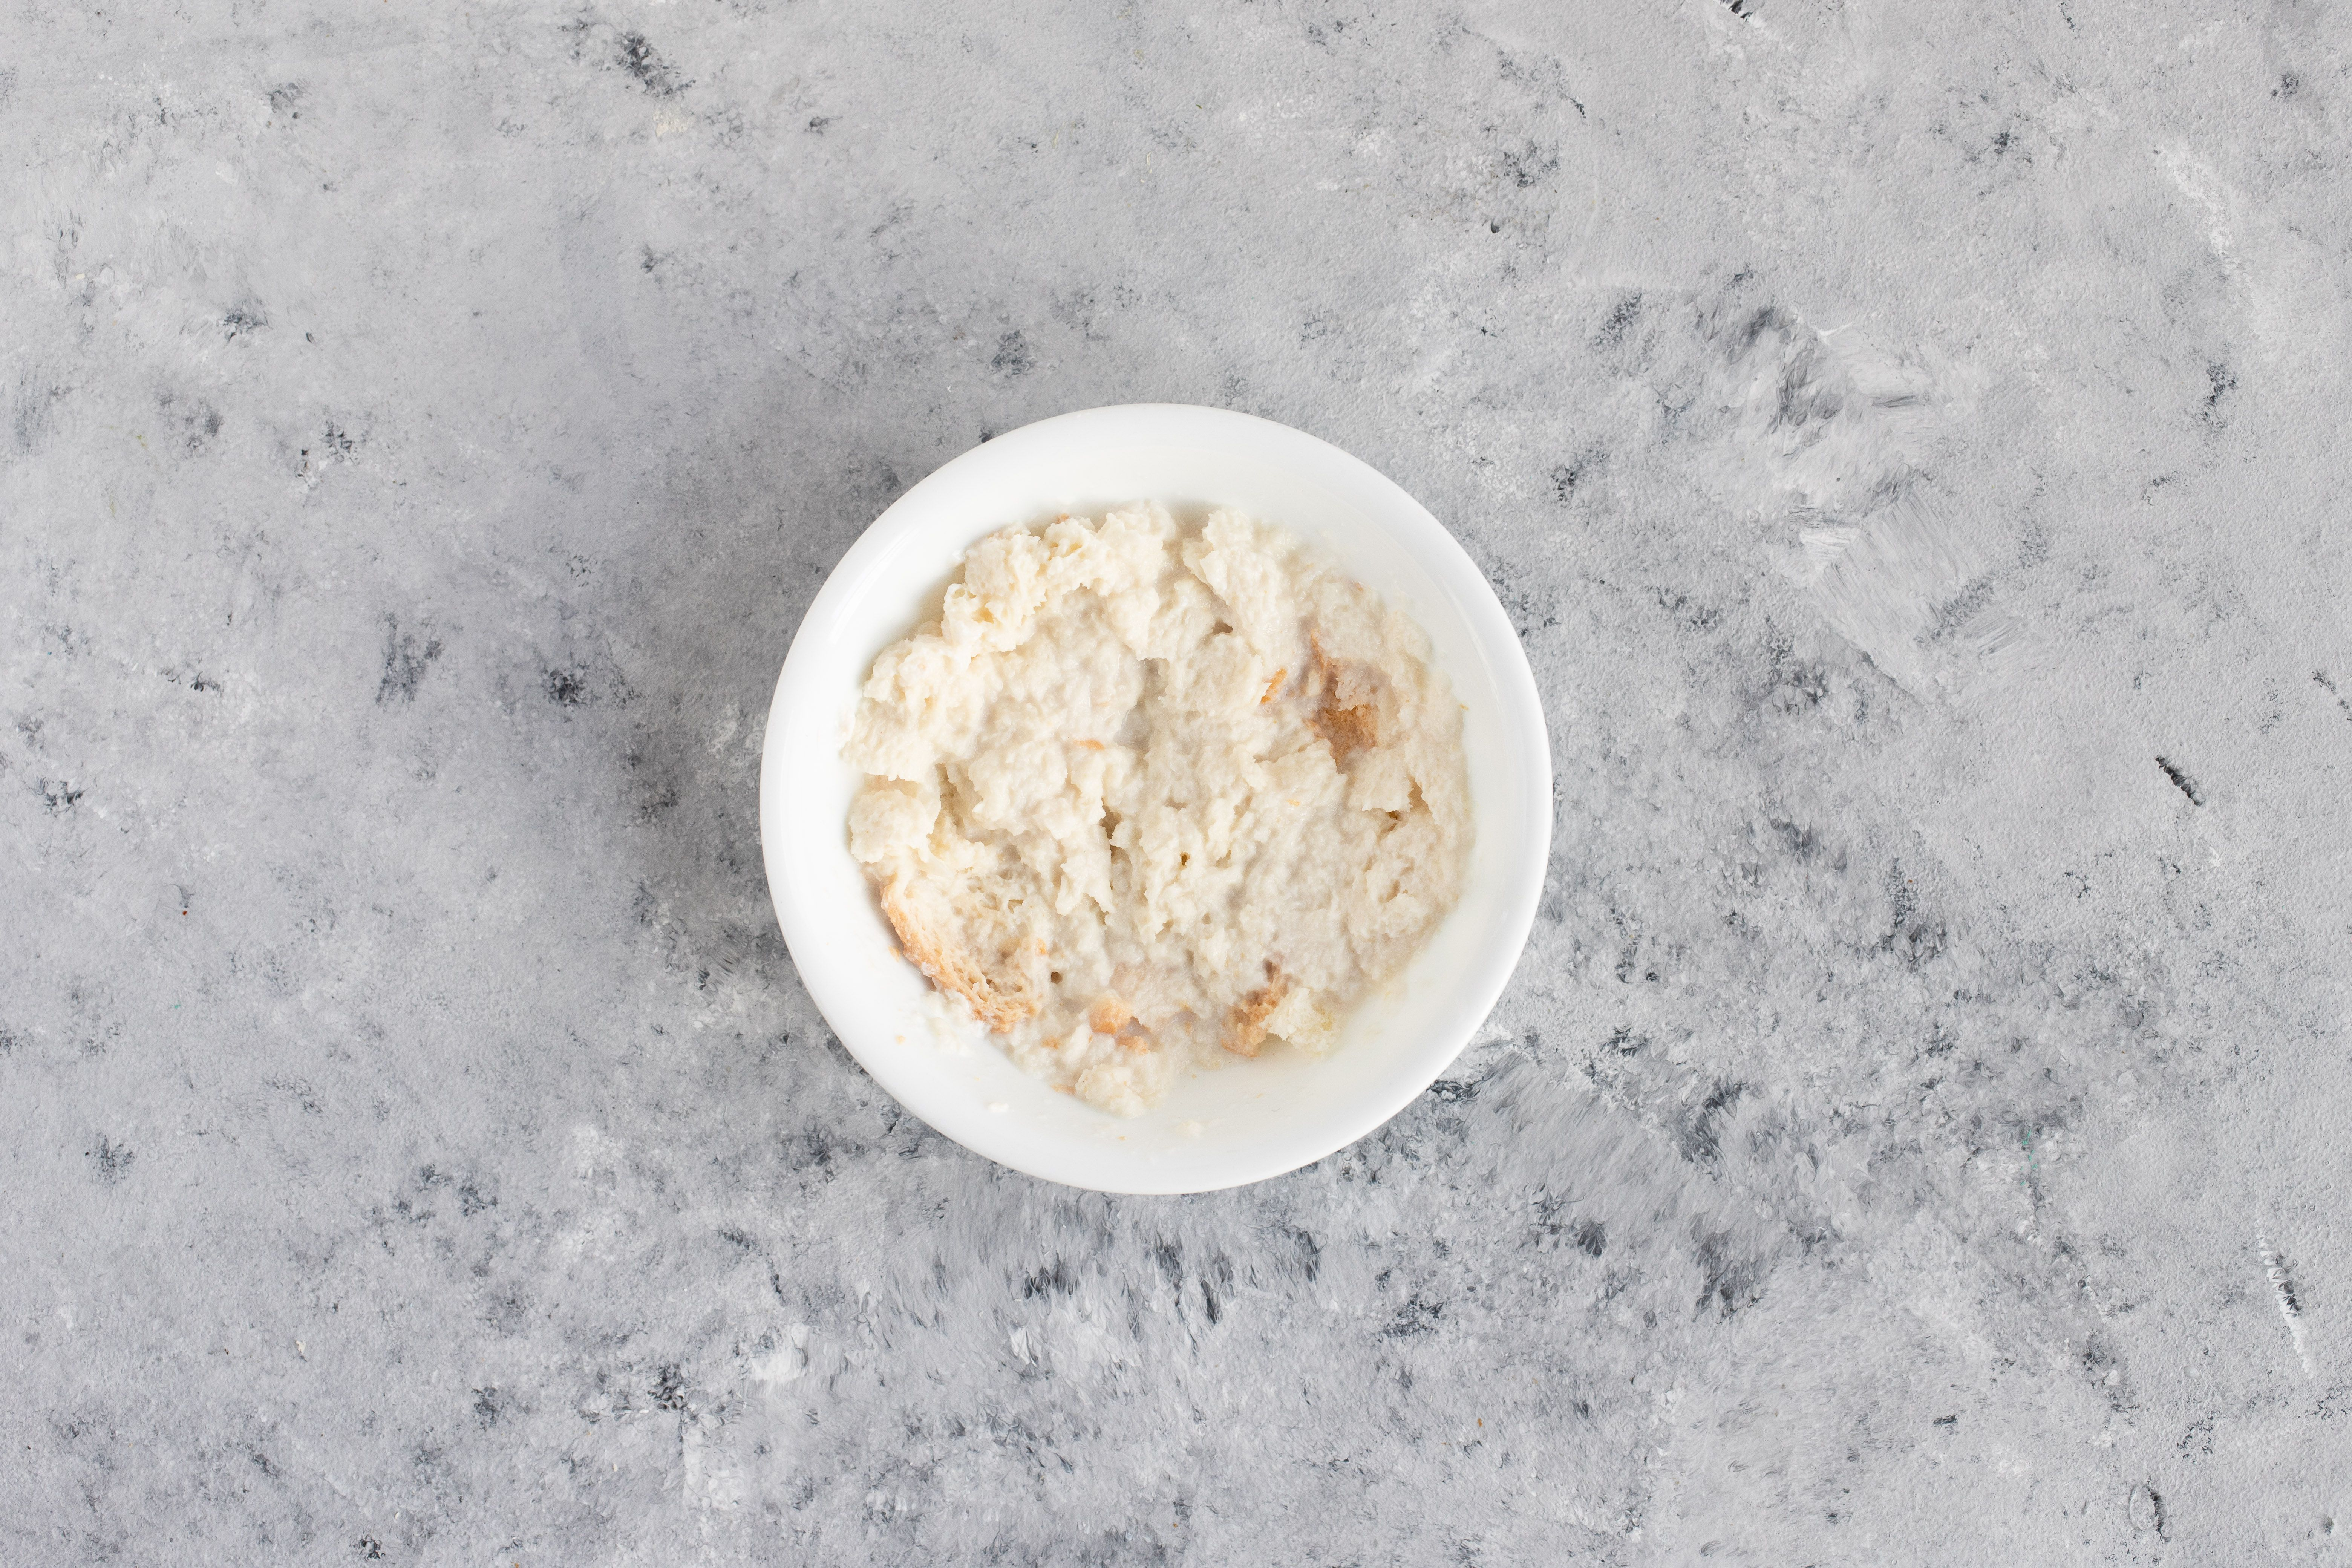 bread and milk mashed together in a small bowl